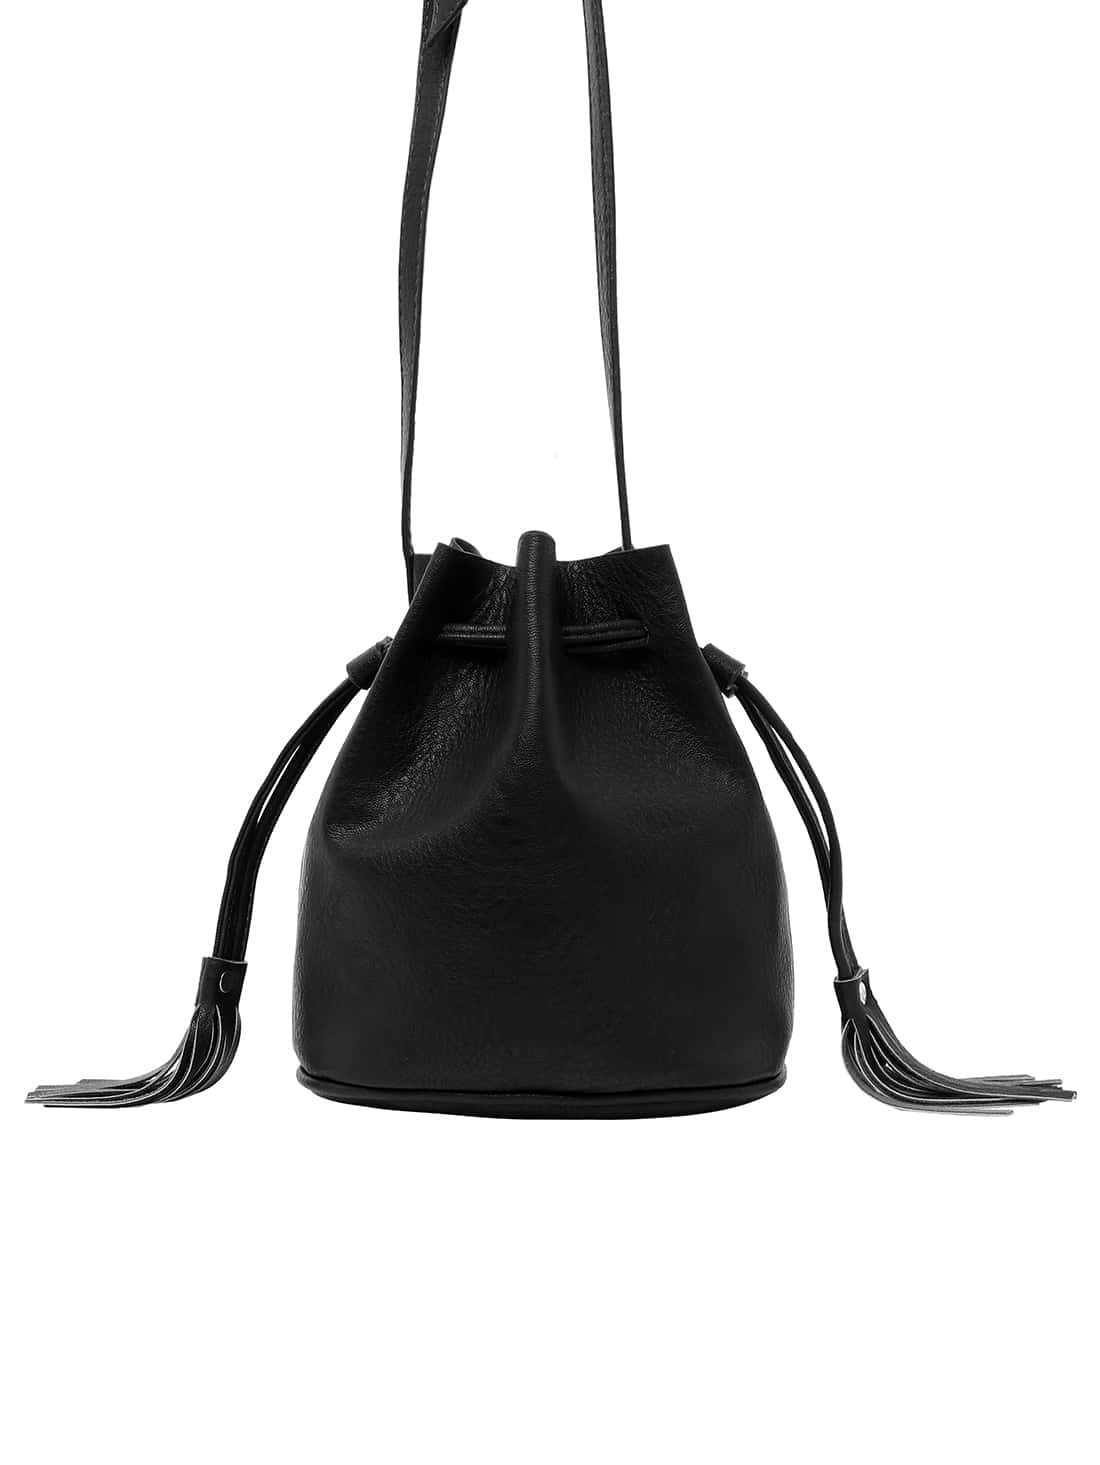 Crossbody handbag that is made with faux leather with a black and white Shop Best Sellers · Deals of the Day · Fast Shipping · Read Ratings & Reviews2,,+ followers on Twitter.